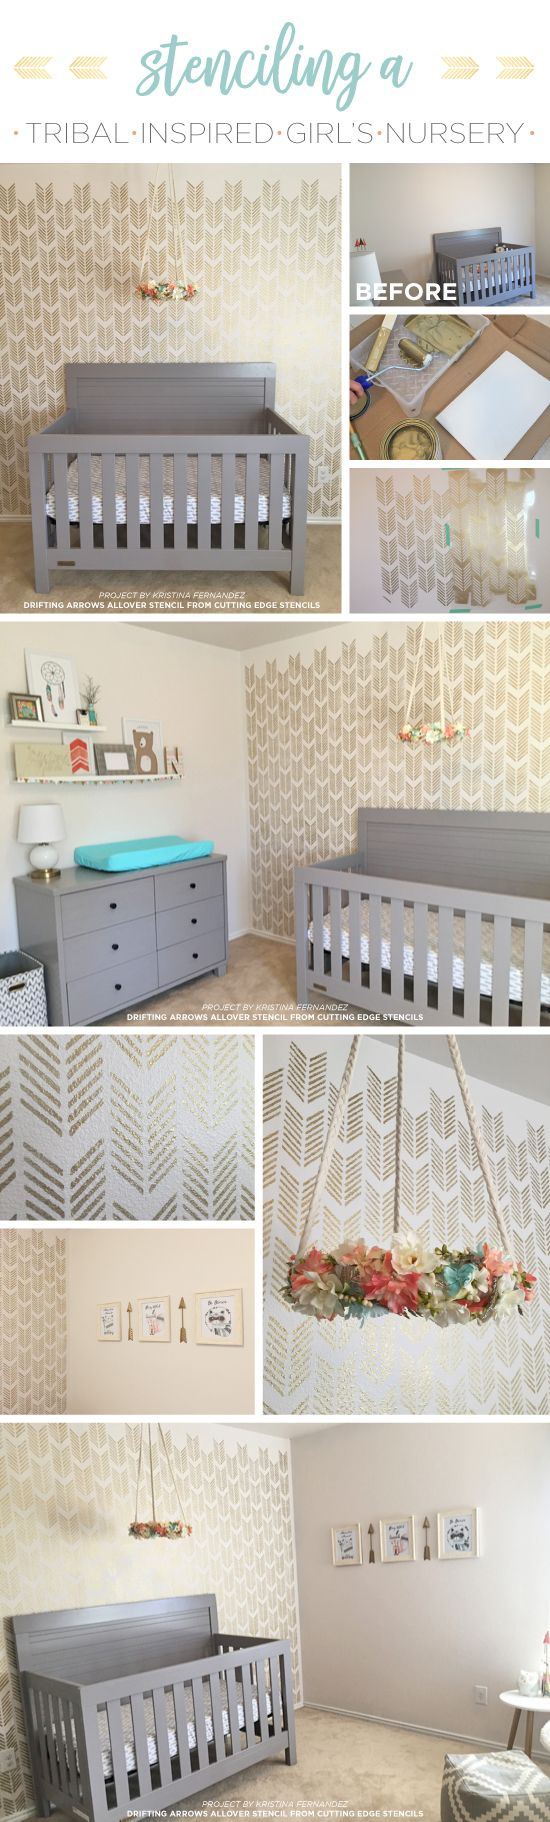 518 best nursery kids room stencils images on pinterest wall cutting edge stencils shares a diy stenciled girls nursery accent wall using the drifting arrows stencil amipublicfo Images